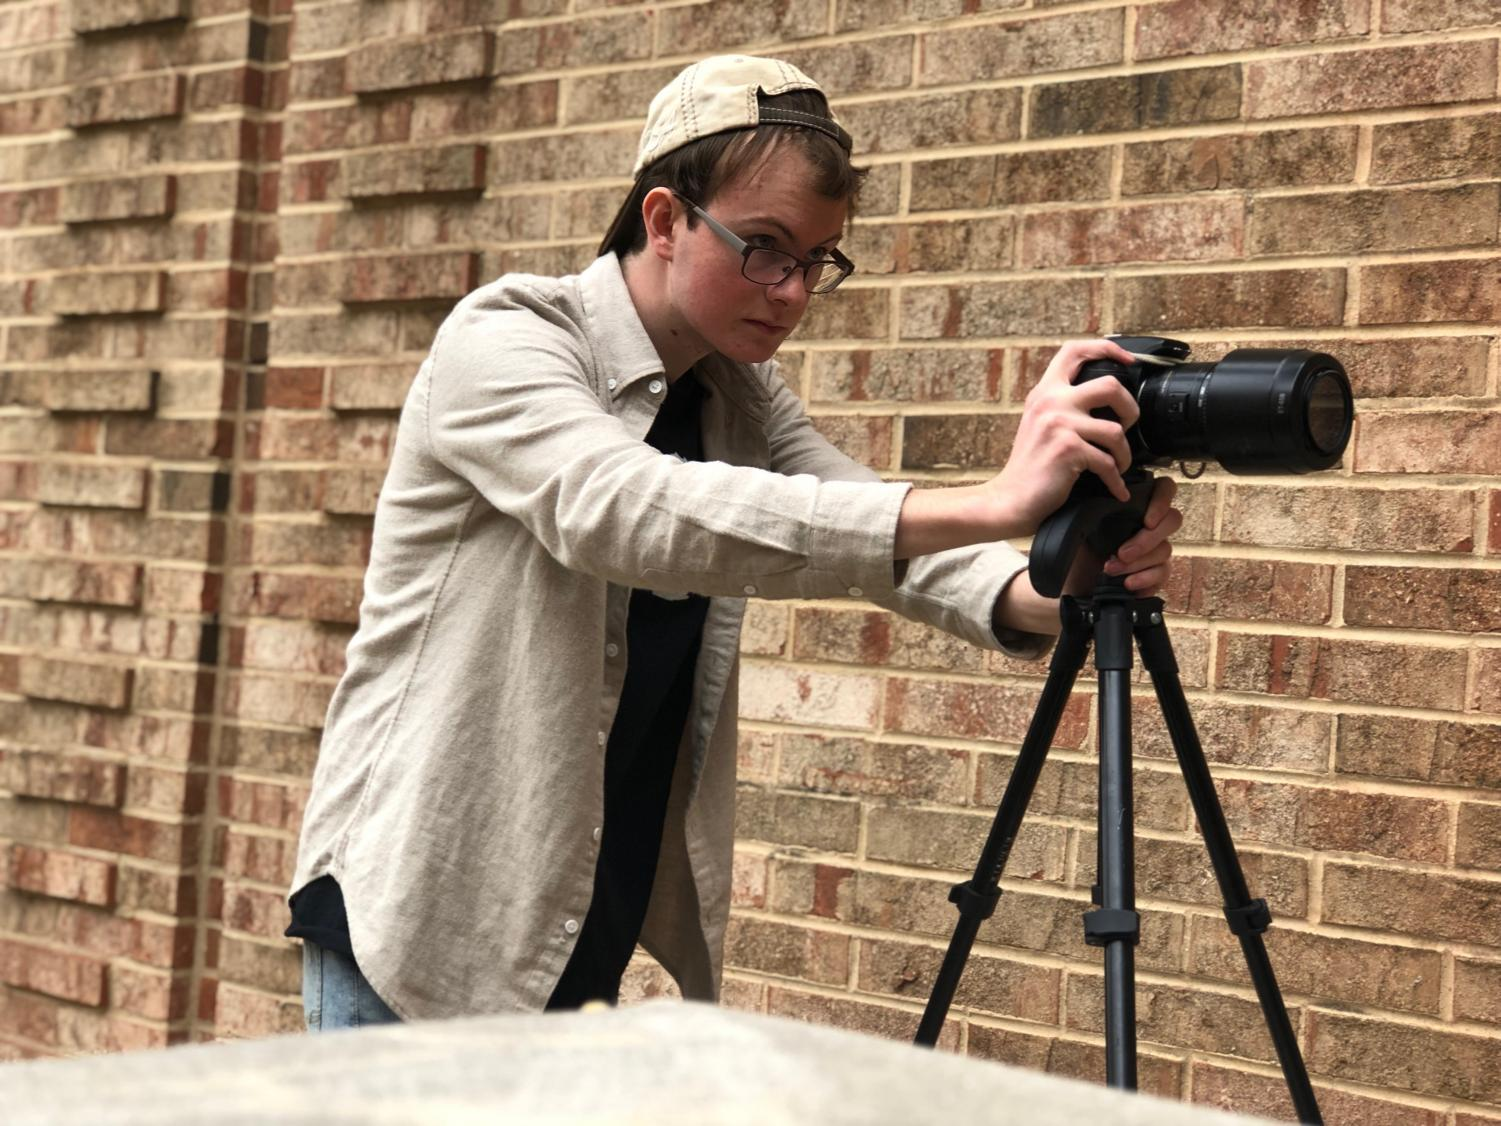 Senior Aaron Menzo hopes to continue his passion for film as well as for music as the next chapter of his life begins.